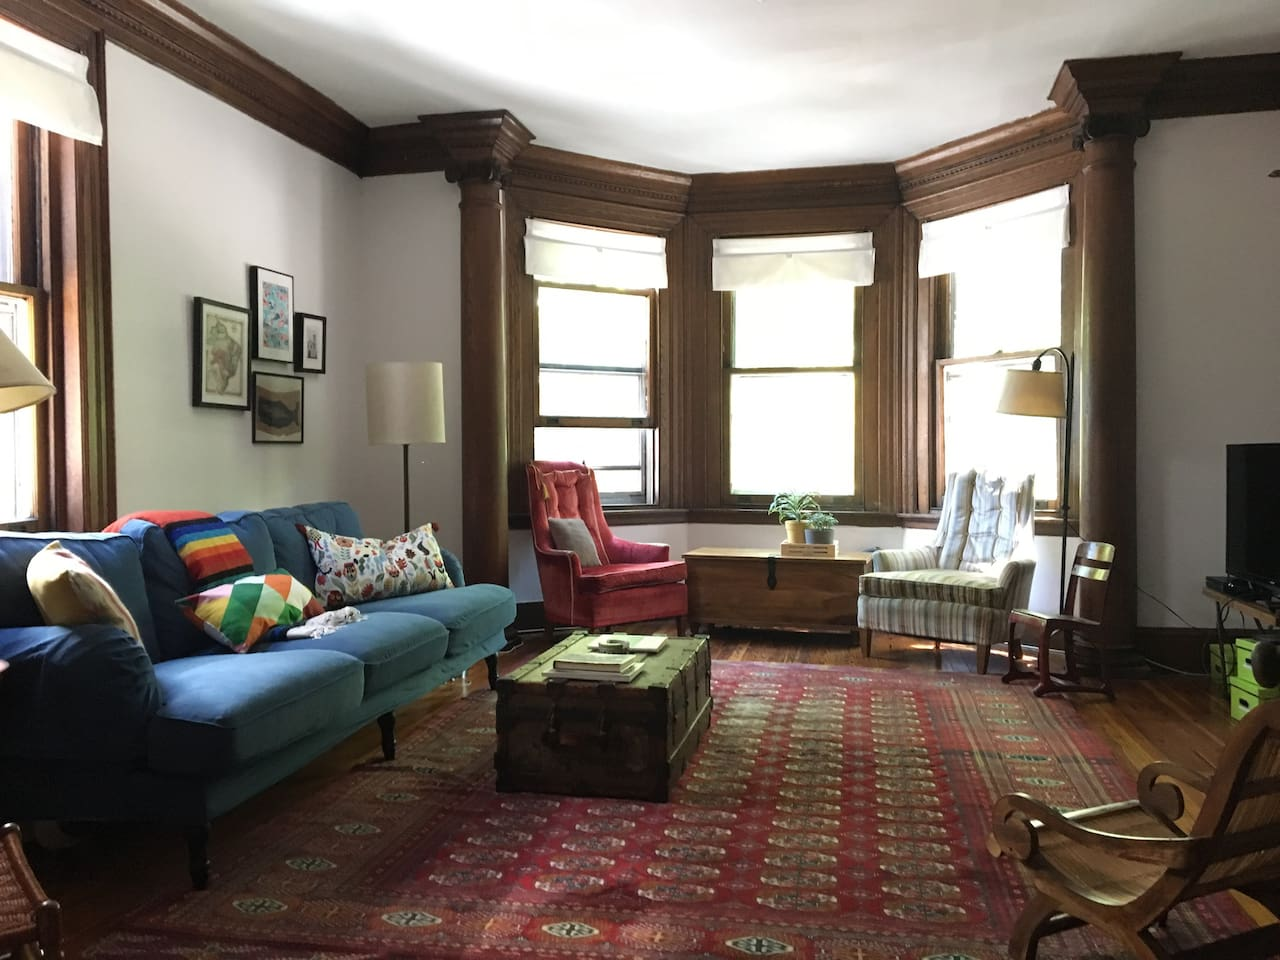 The sunny family room has a bay window with park views.